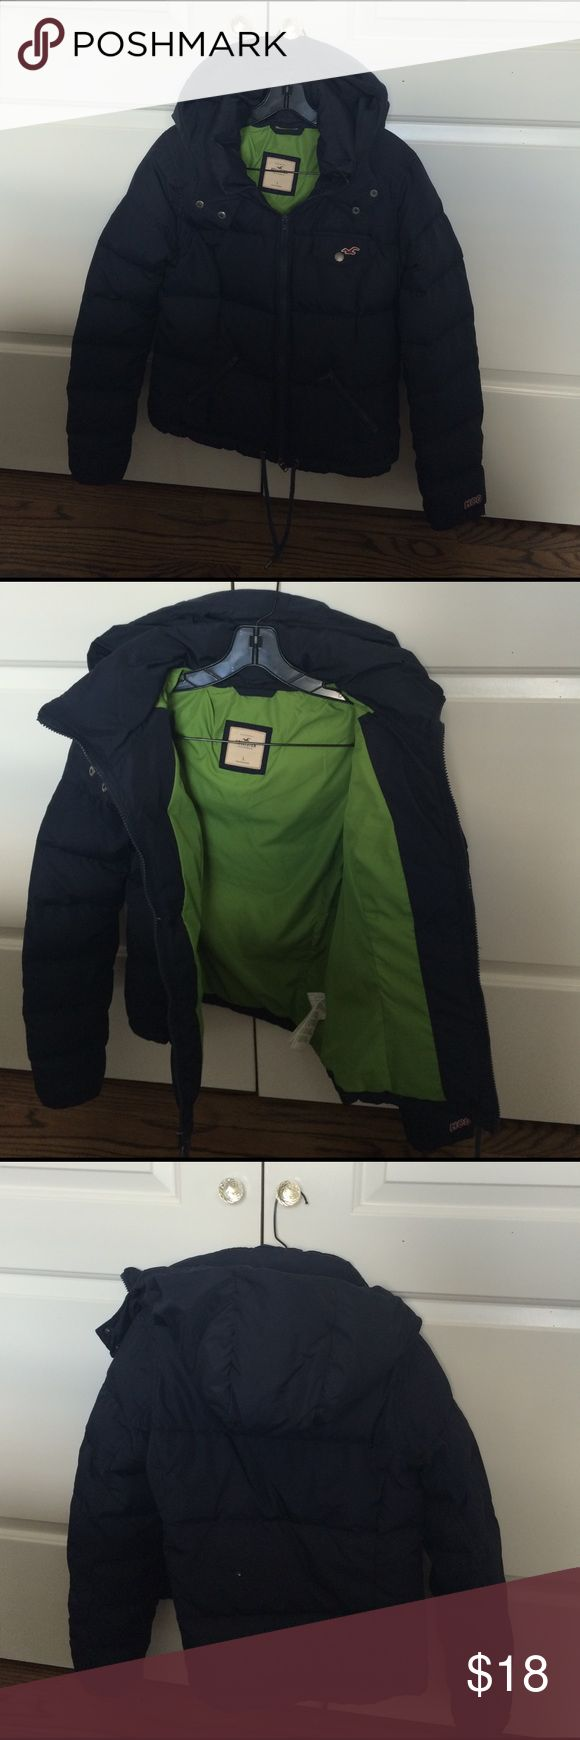 HOLLISTER coat Navy blue with green interior... Attached hood. Small hole on back as seen in photo but aside from that it's in good condition. Negotiable! Make an offer! Hollister Jackets & Coats Puffers